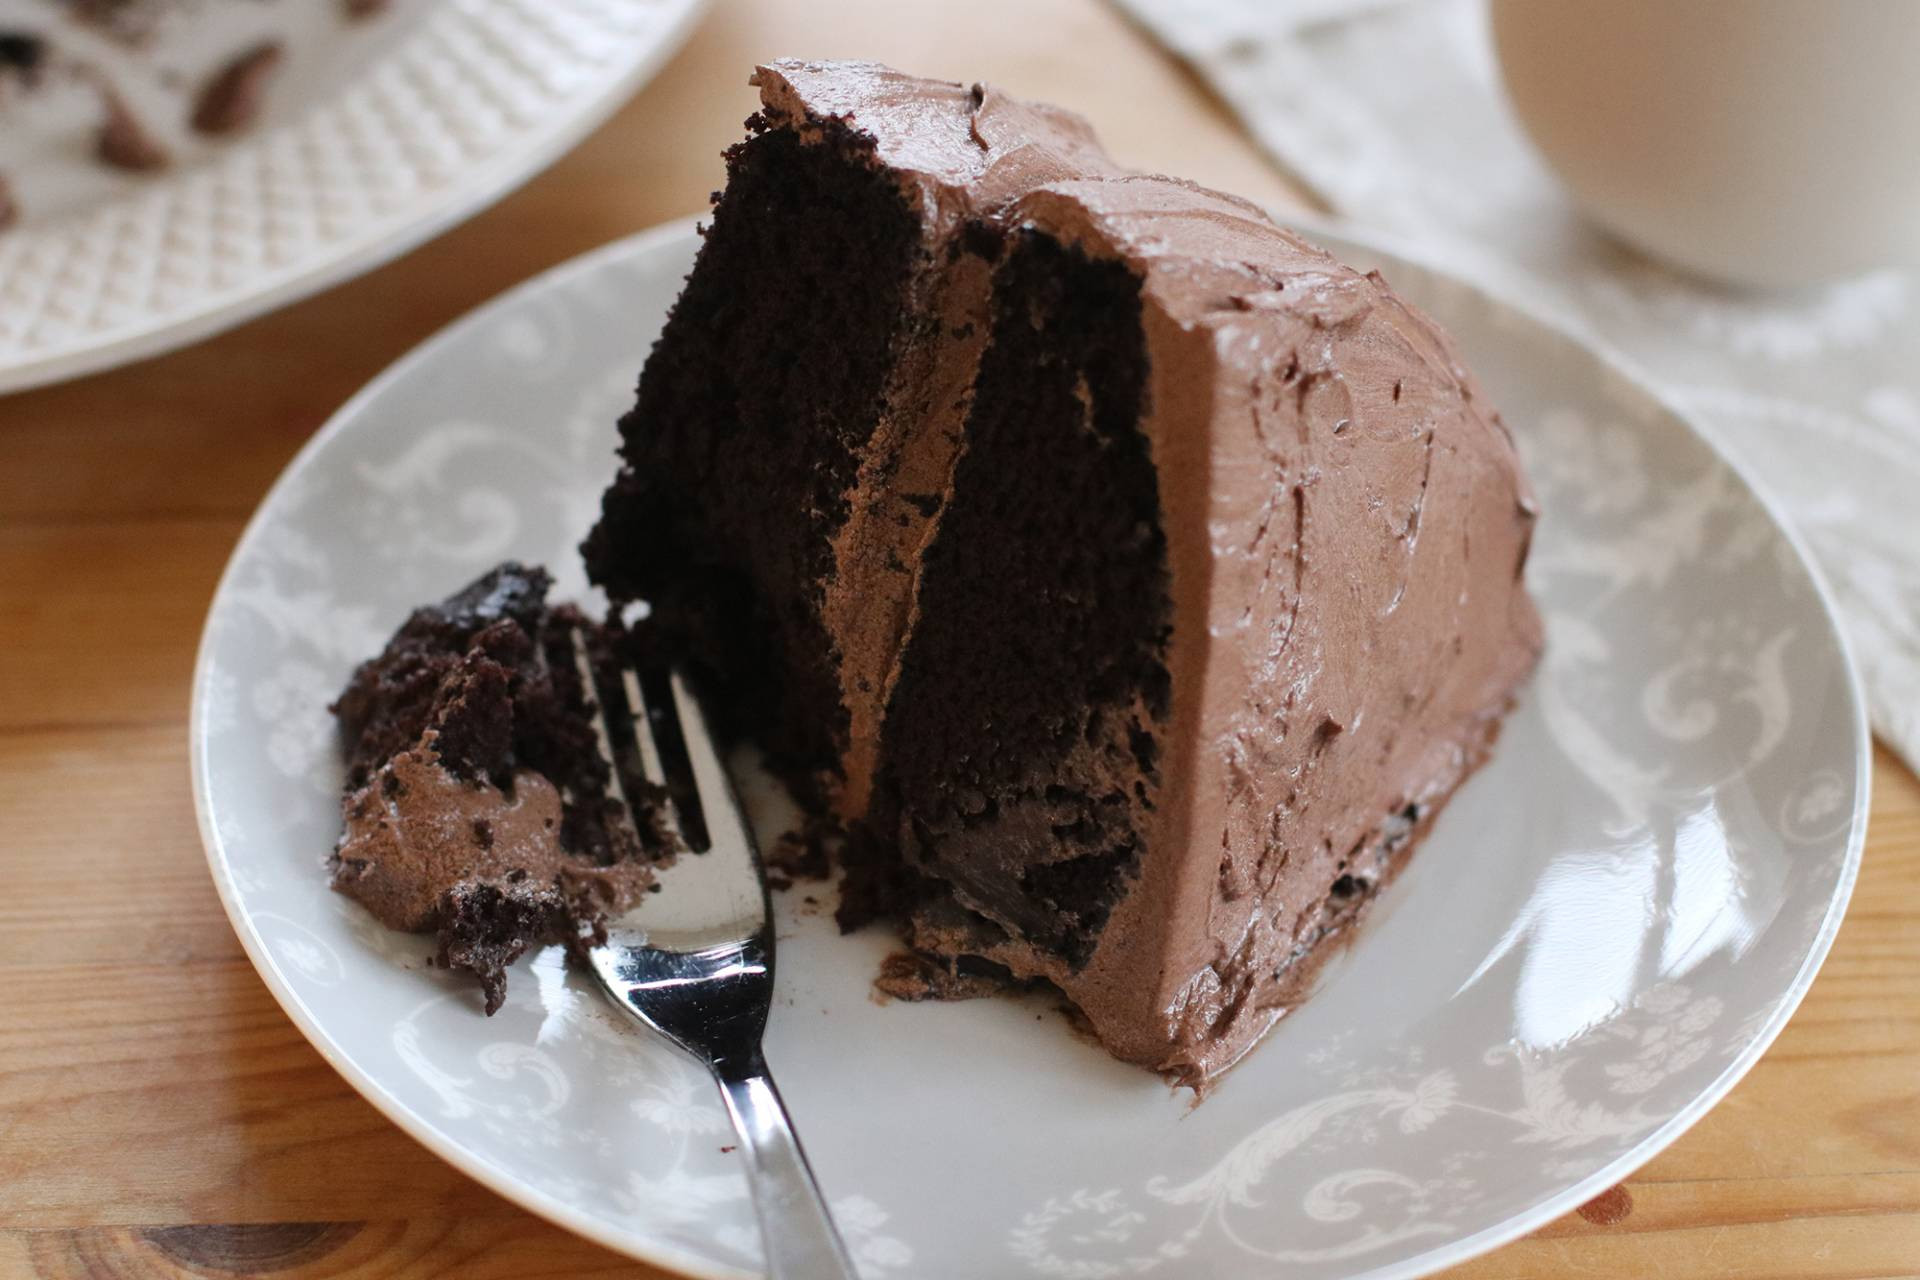 Gluten And Dairy Free Cake Recipes Easy  My Wickedly Chocolatey Gluten Free Chocolate Cake Recipe